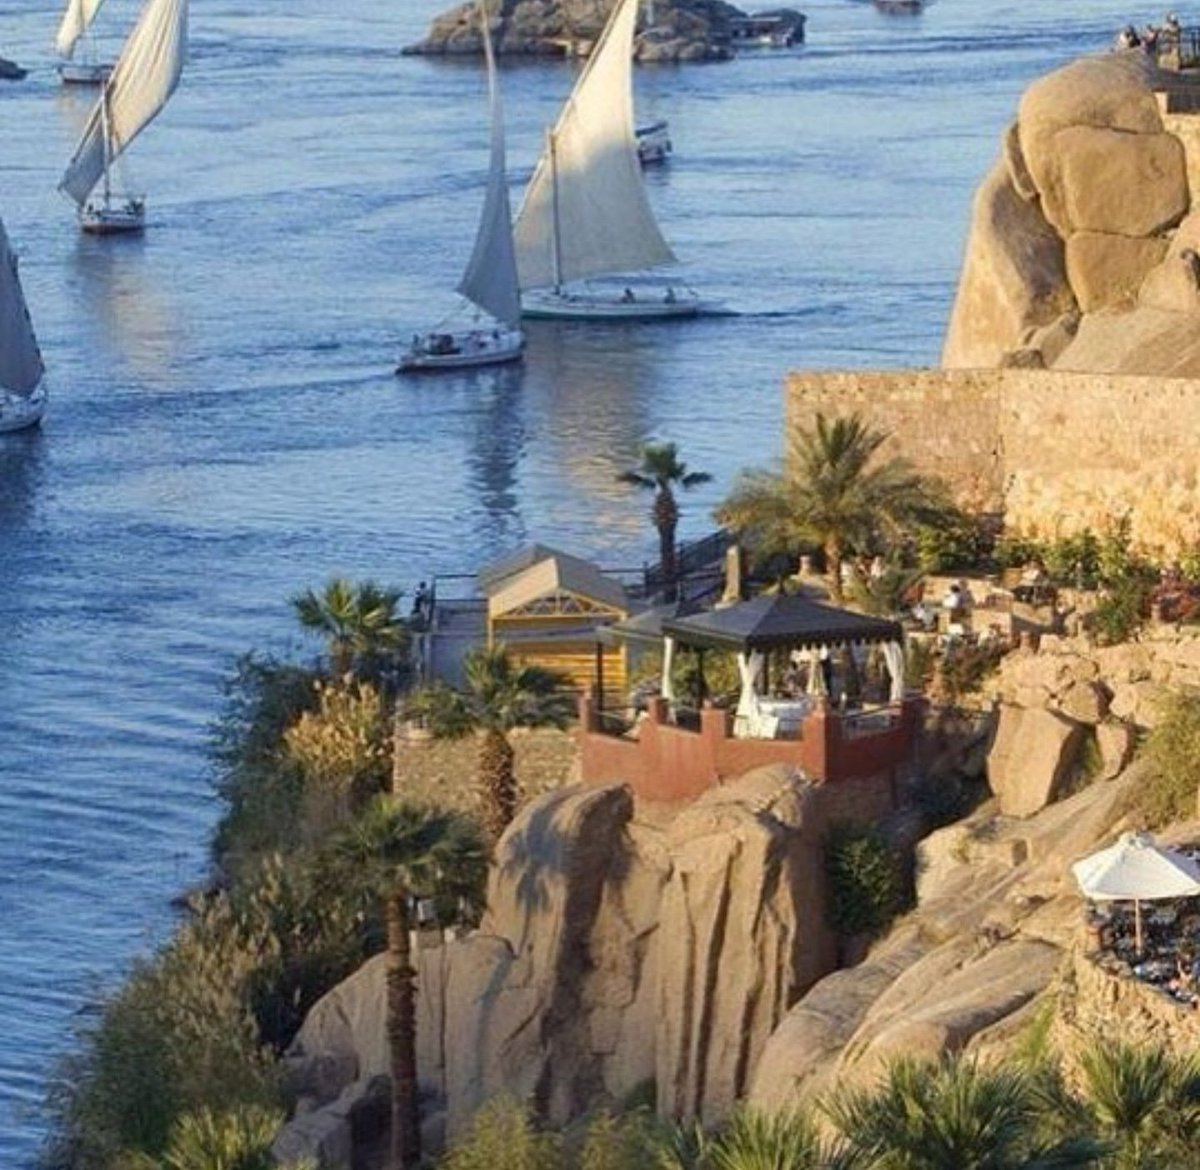 Beyond the grace of the granite barriers, often claimed to be the point at which civilization ends, a whole new world of wonder awaits along the immortal Nile.📸@waleed_kamal_aswan #SofitelWorld #LiveLikeLegends https://t.co/g4IONTmlNW